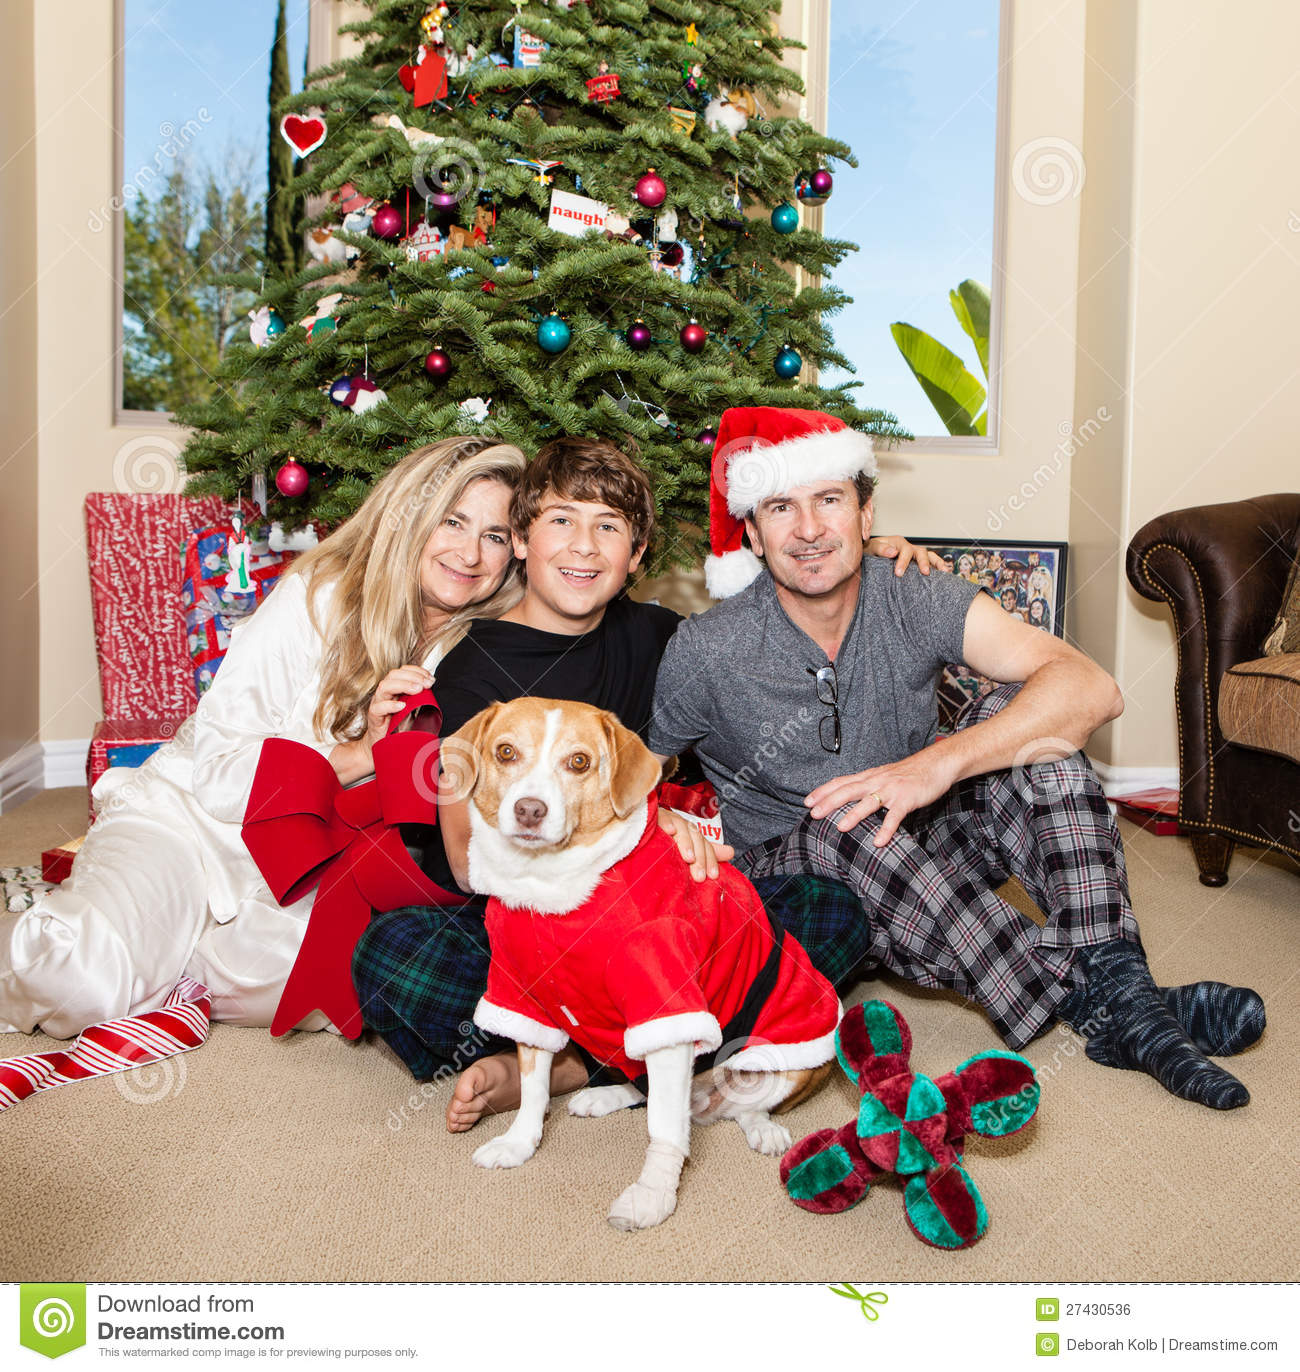 Family Christmas Pajamas With Dog.Family Christmas In Pajamas Stock Photo Image Of Mother